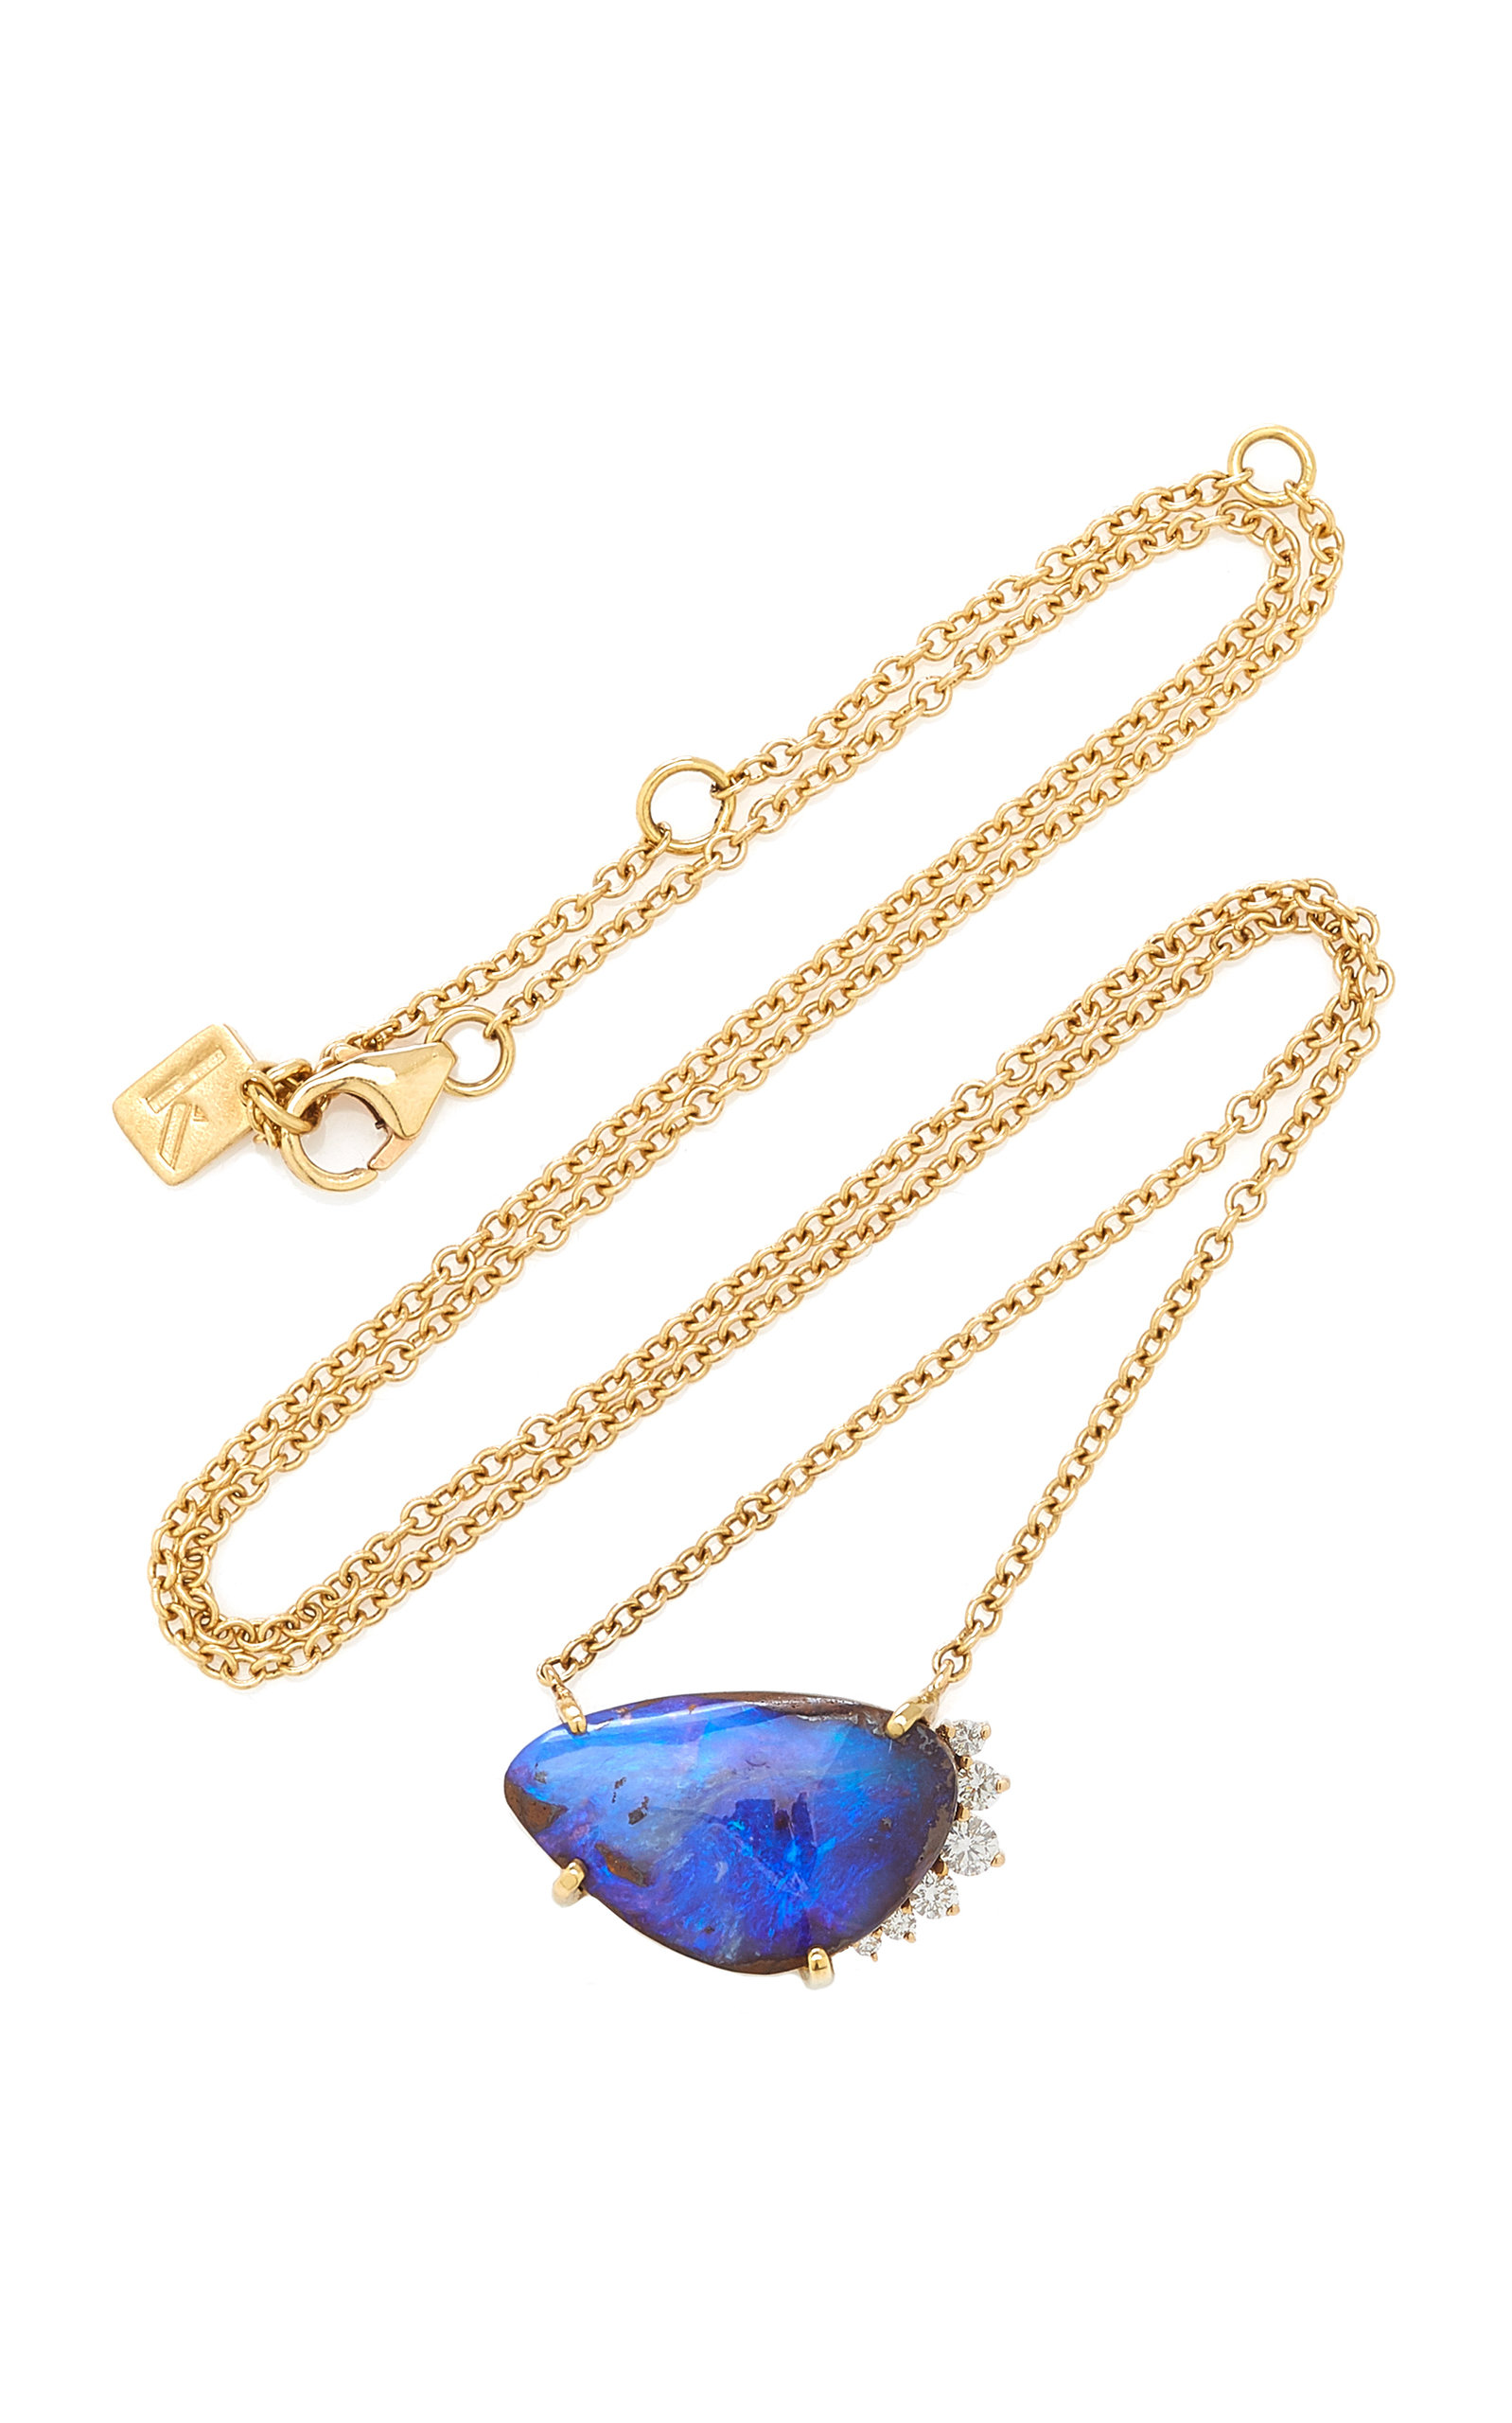 Women's 14K Yellow Gold Opal and Diamond Necklace